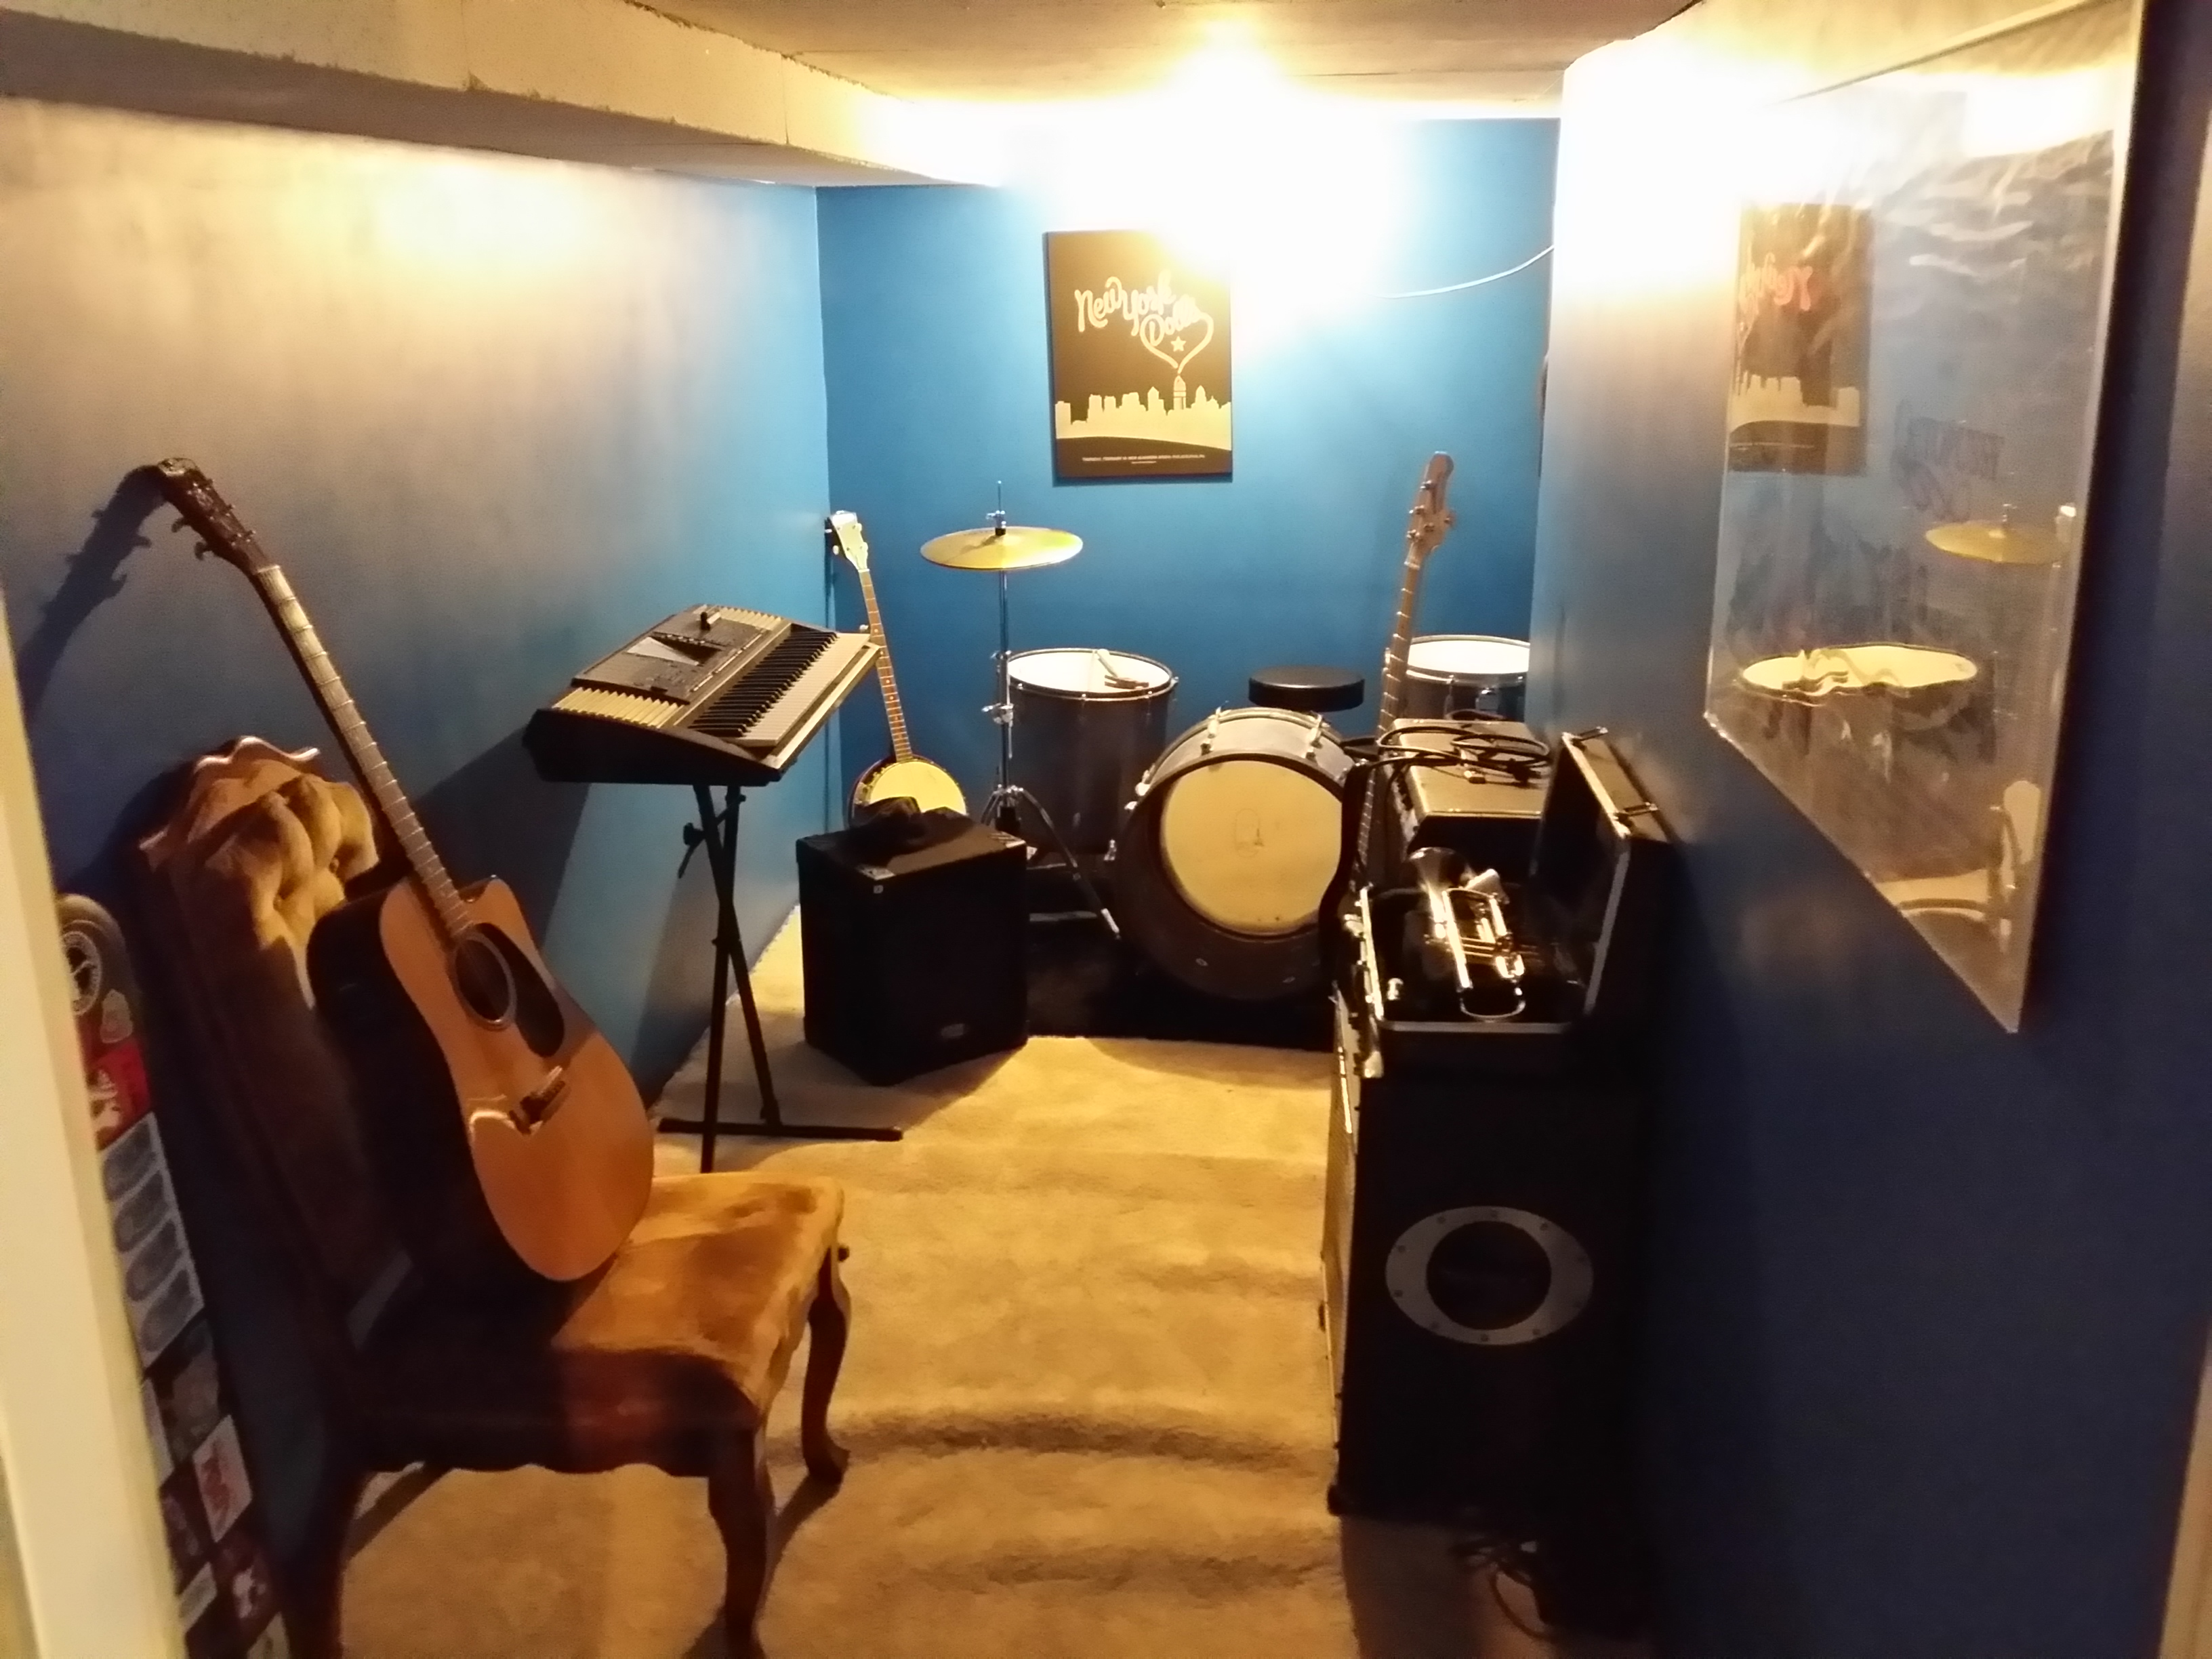 Marvelous How To Build Your Own Soundproof Rehearsal Room When You Have No Largest Home Design Picture Inspirations Pitcheantrous